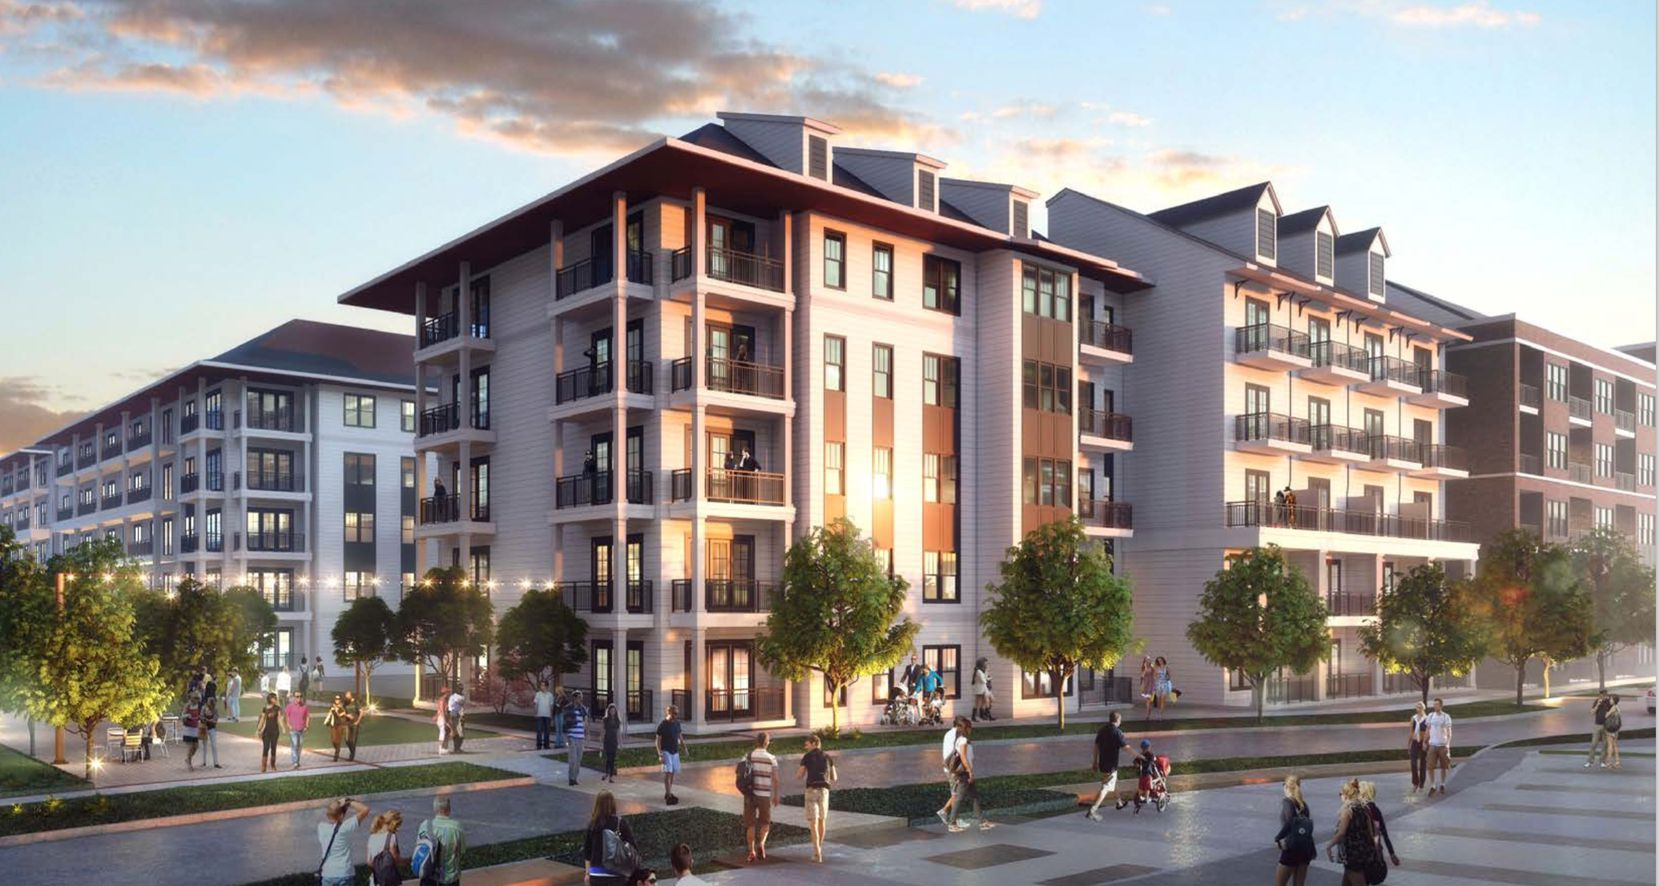 The Trinity apartments on Singleton Boulevard will be the third rental community in the $300 million Trinity Green project.